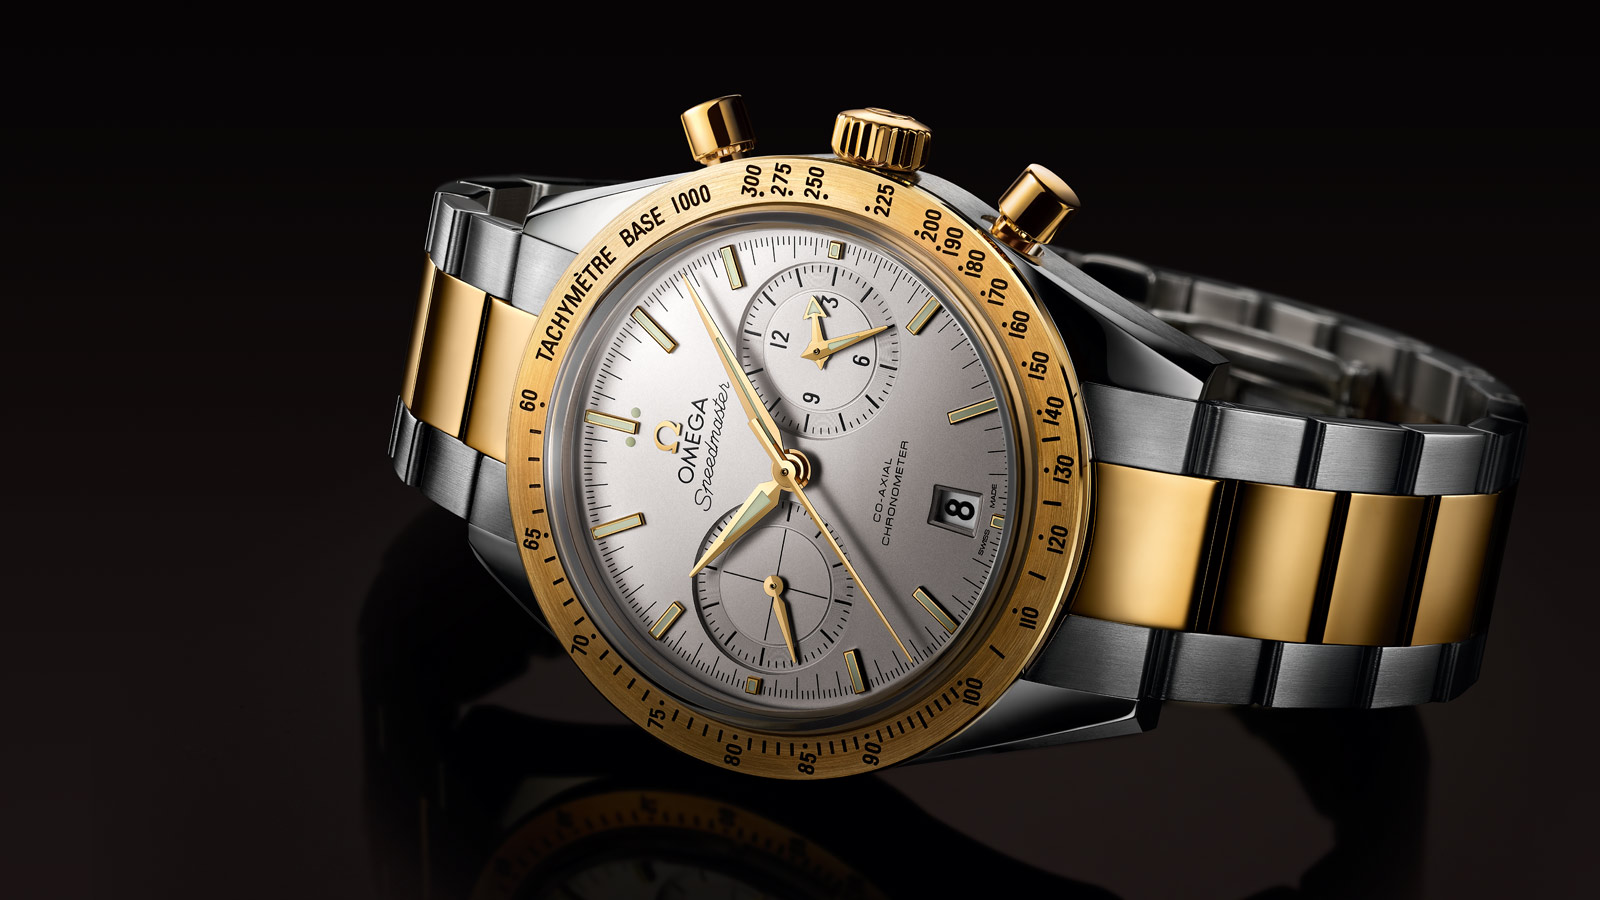 Speedmaster スピードマスター '57 Speedmaster '57 Omega Co‑Axial Chronograph 41.5 mm - 331.20.42.51.02.001 - ビュー 1